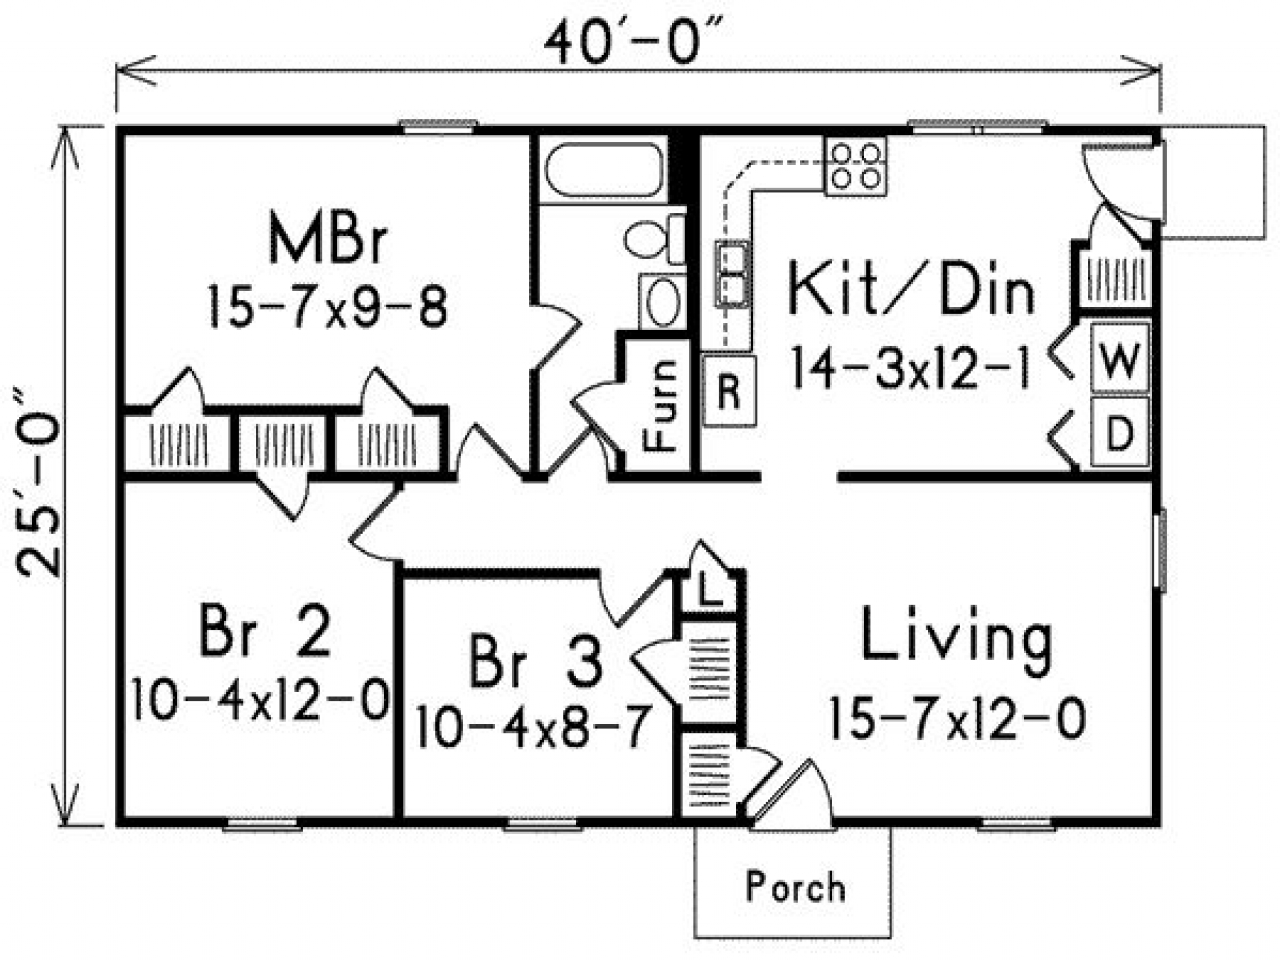 1000 sq ft floor plans small house plans 1000 sq ft 1000 sq foot house 22807